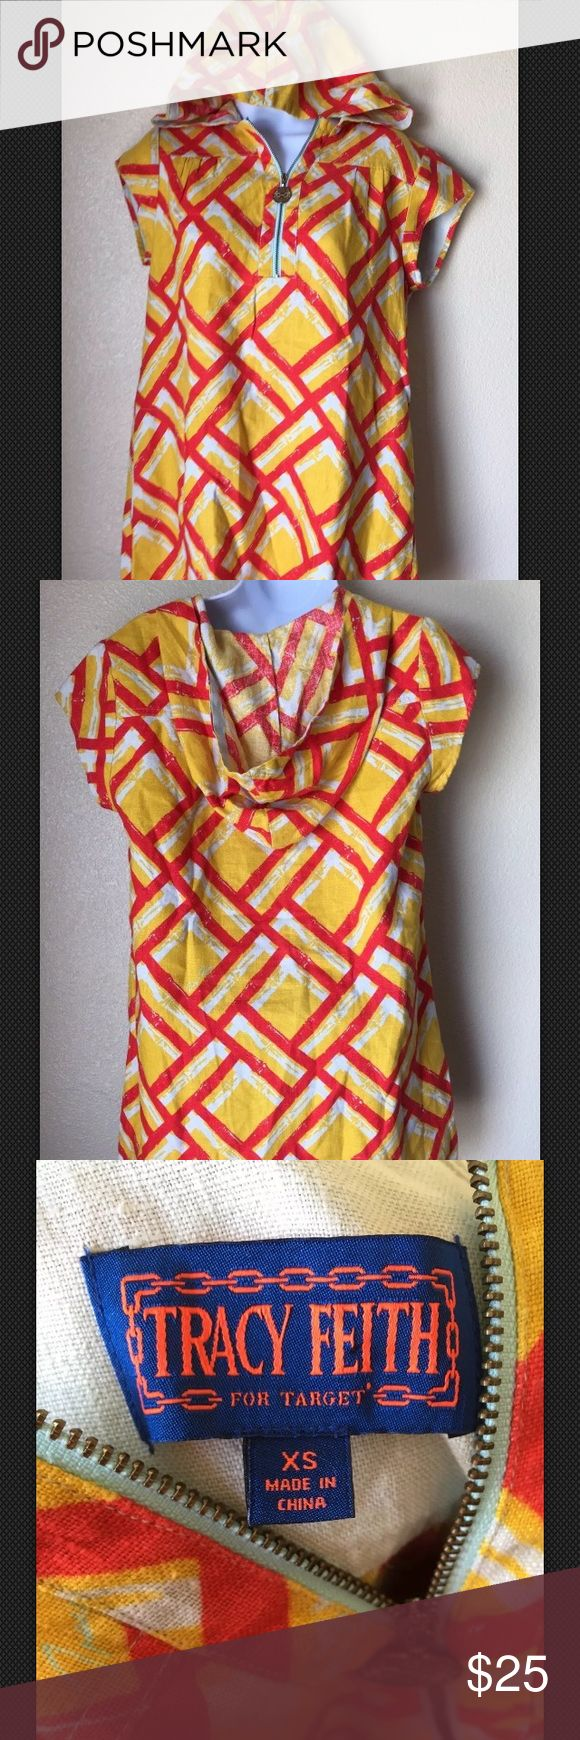 Tracy Feith for Target Linen Hooded Tunic dress XS Tracy Feith for Target Women's Linen  Yellow Red Zip-up Hooded Tunic dress Sz XS Tracy Feith Dresses Mini